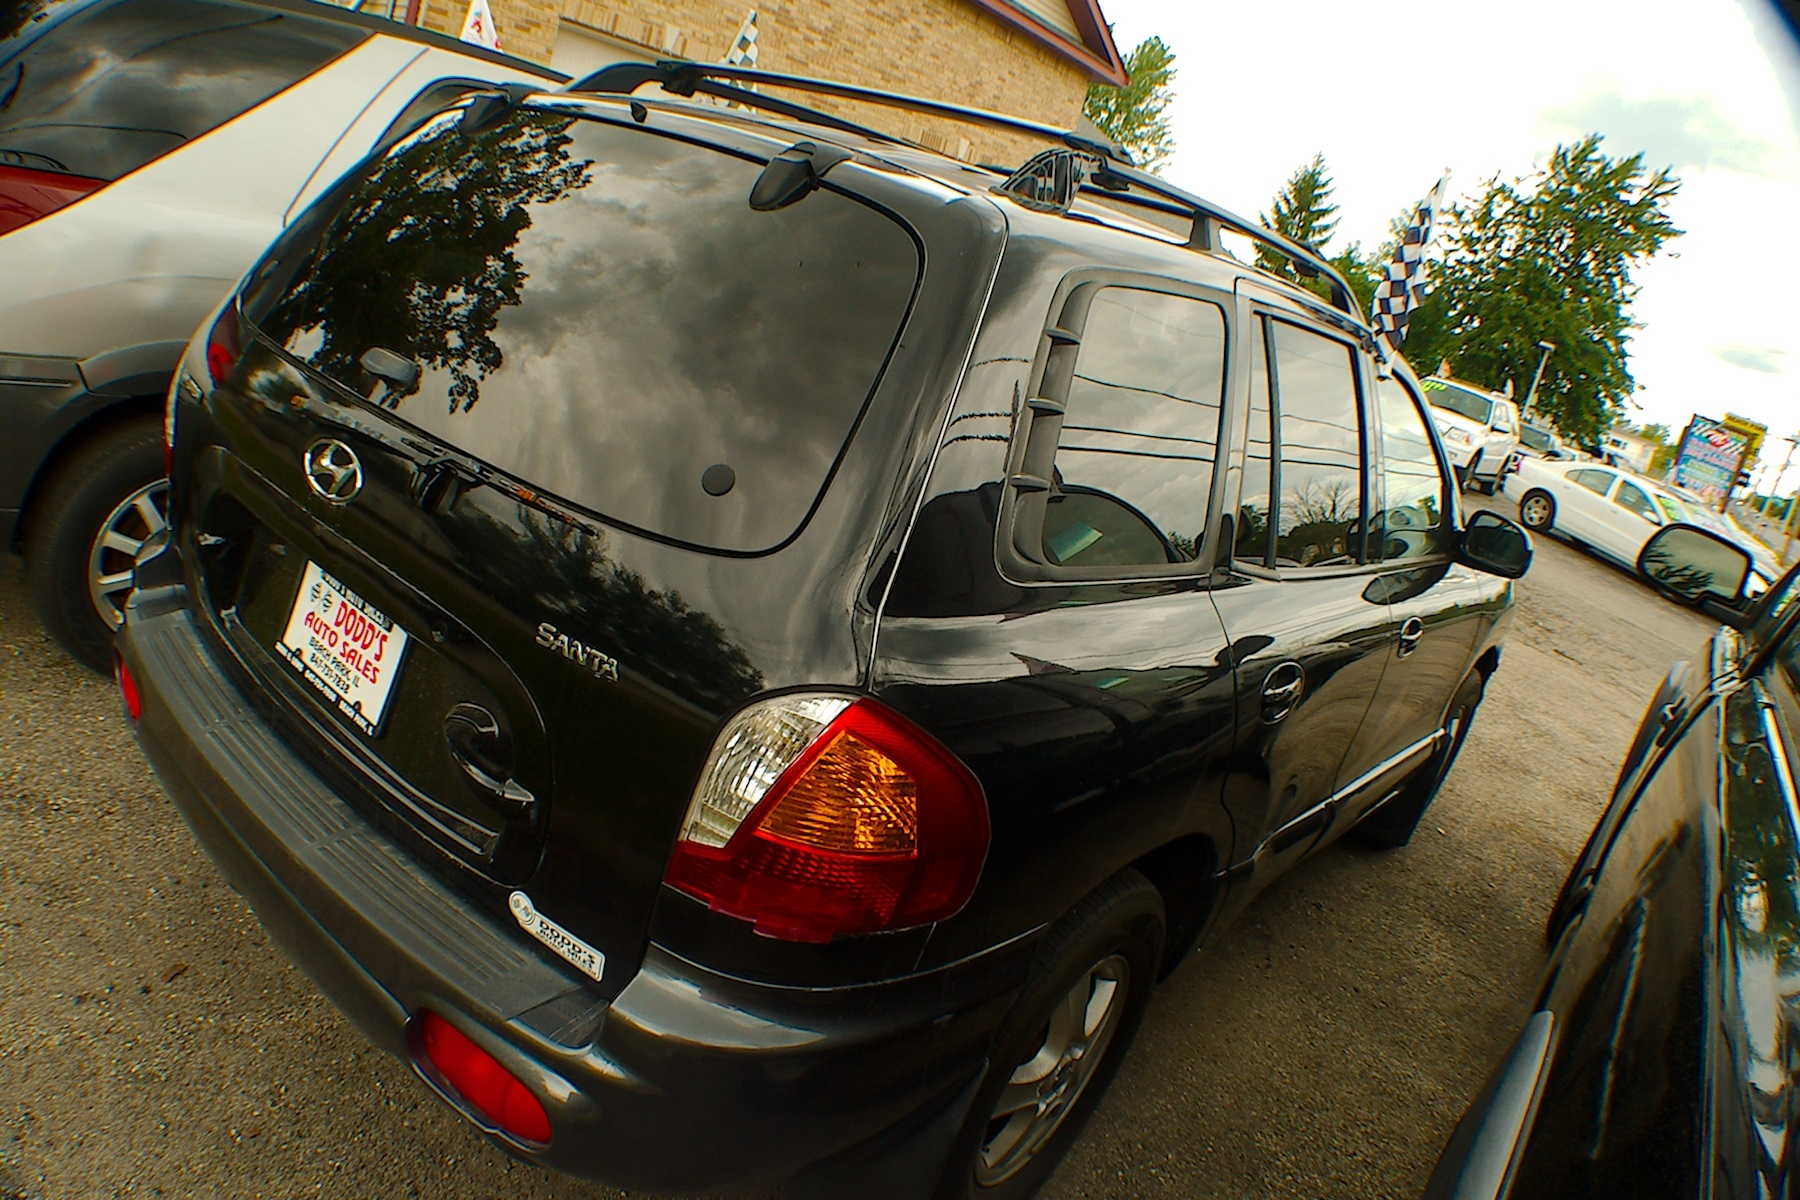 2003 Hyundai Santa Fe Black SUV Sale Buffalo Grove Deerfield Fox Lake Antioch